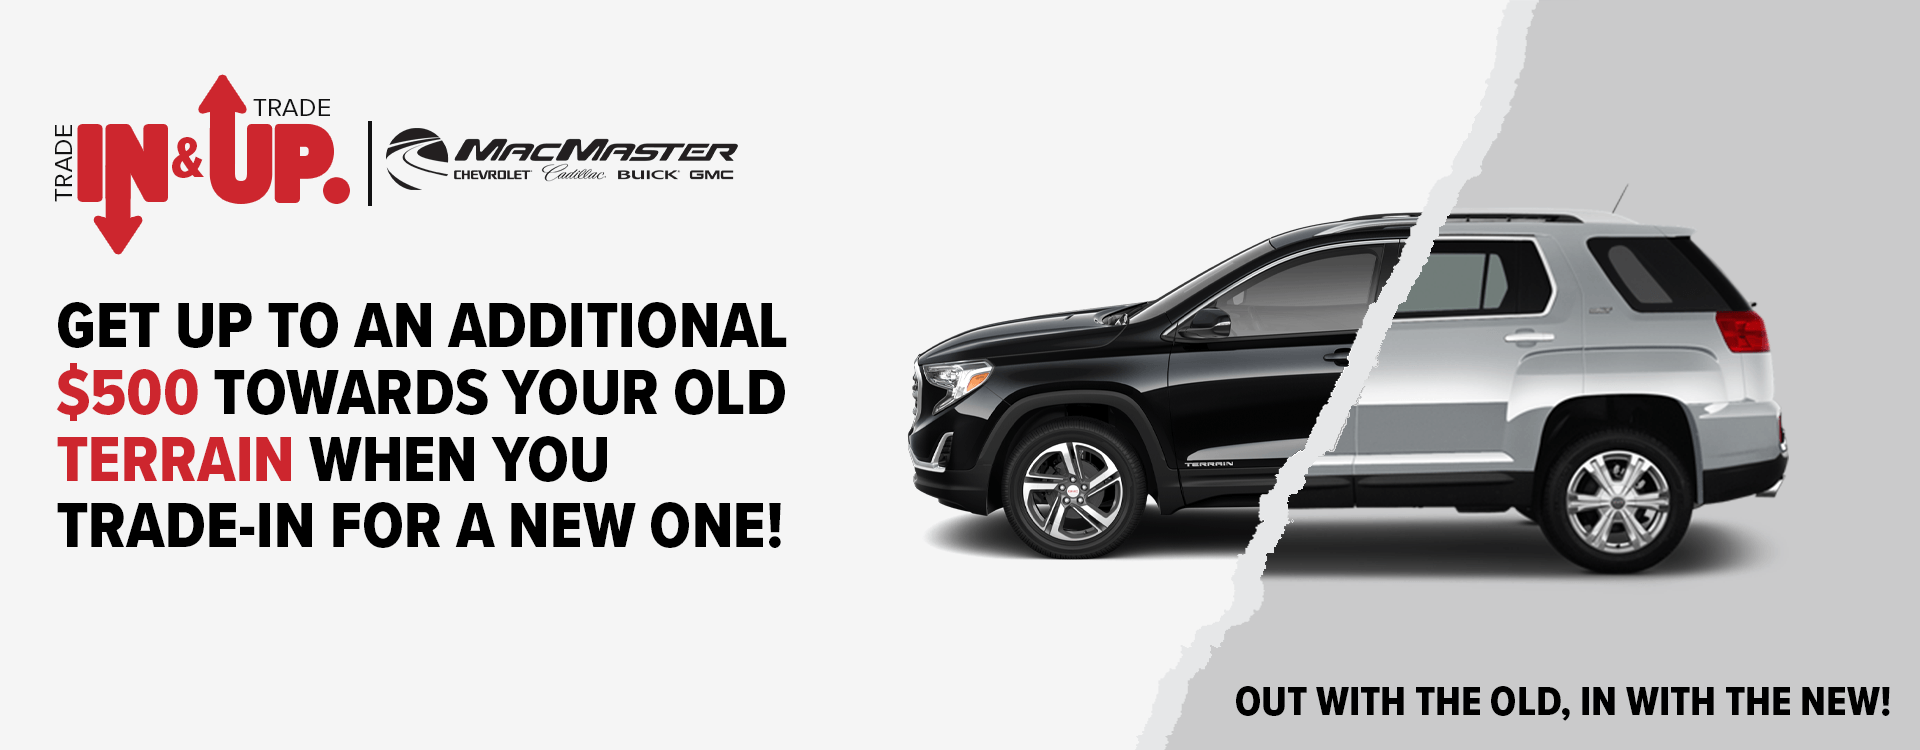 Trade In & Trade Up | MacMaster Chevrolet, London ON